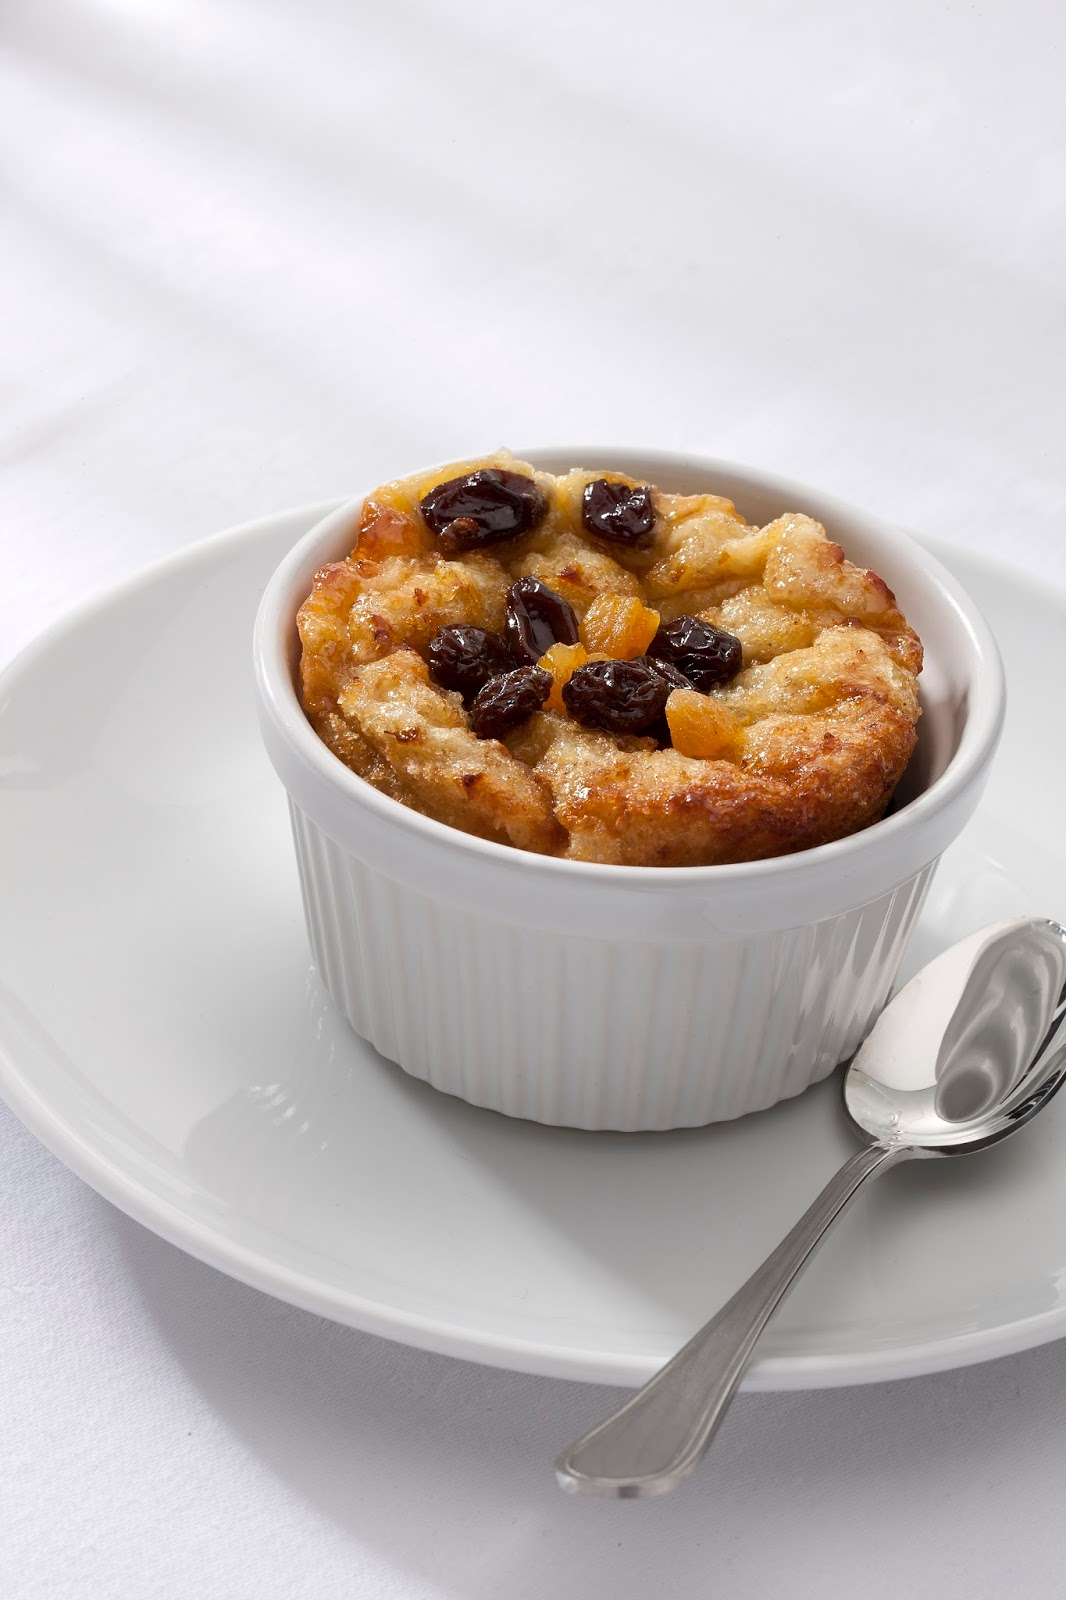 California Raisin, Apricot Bread And Butter Pudding